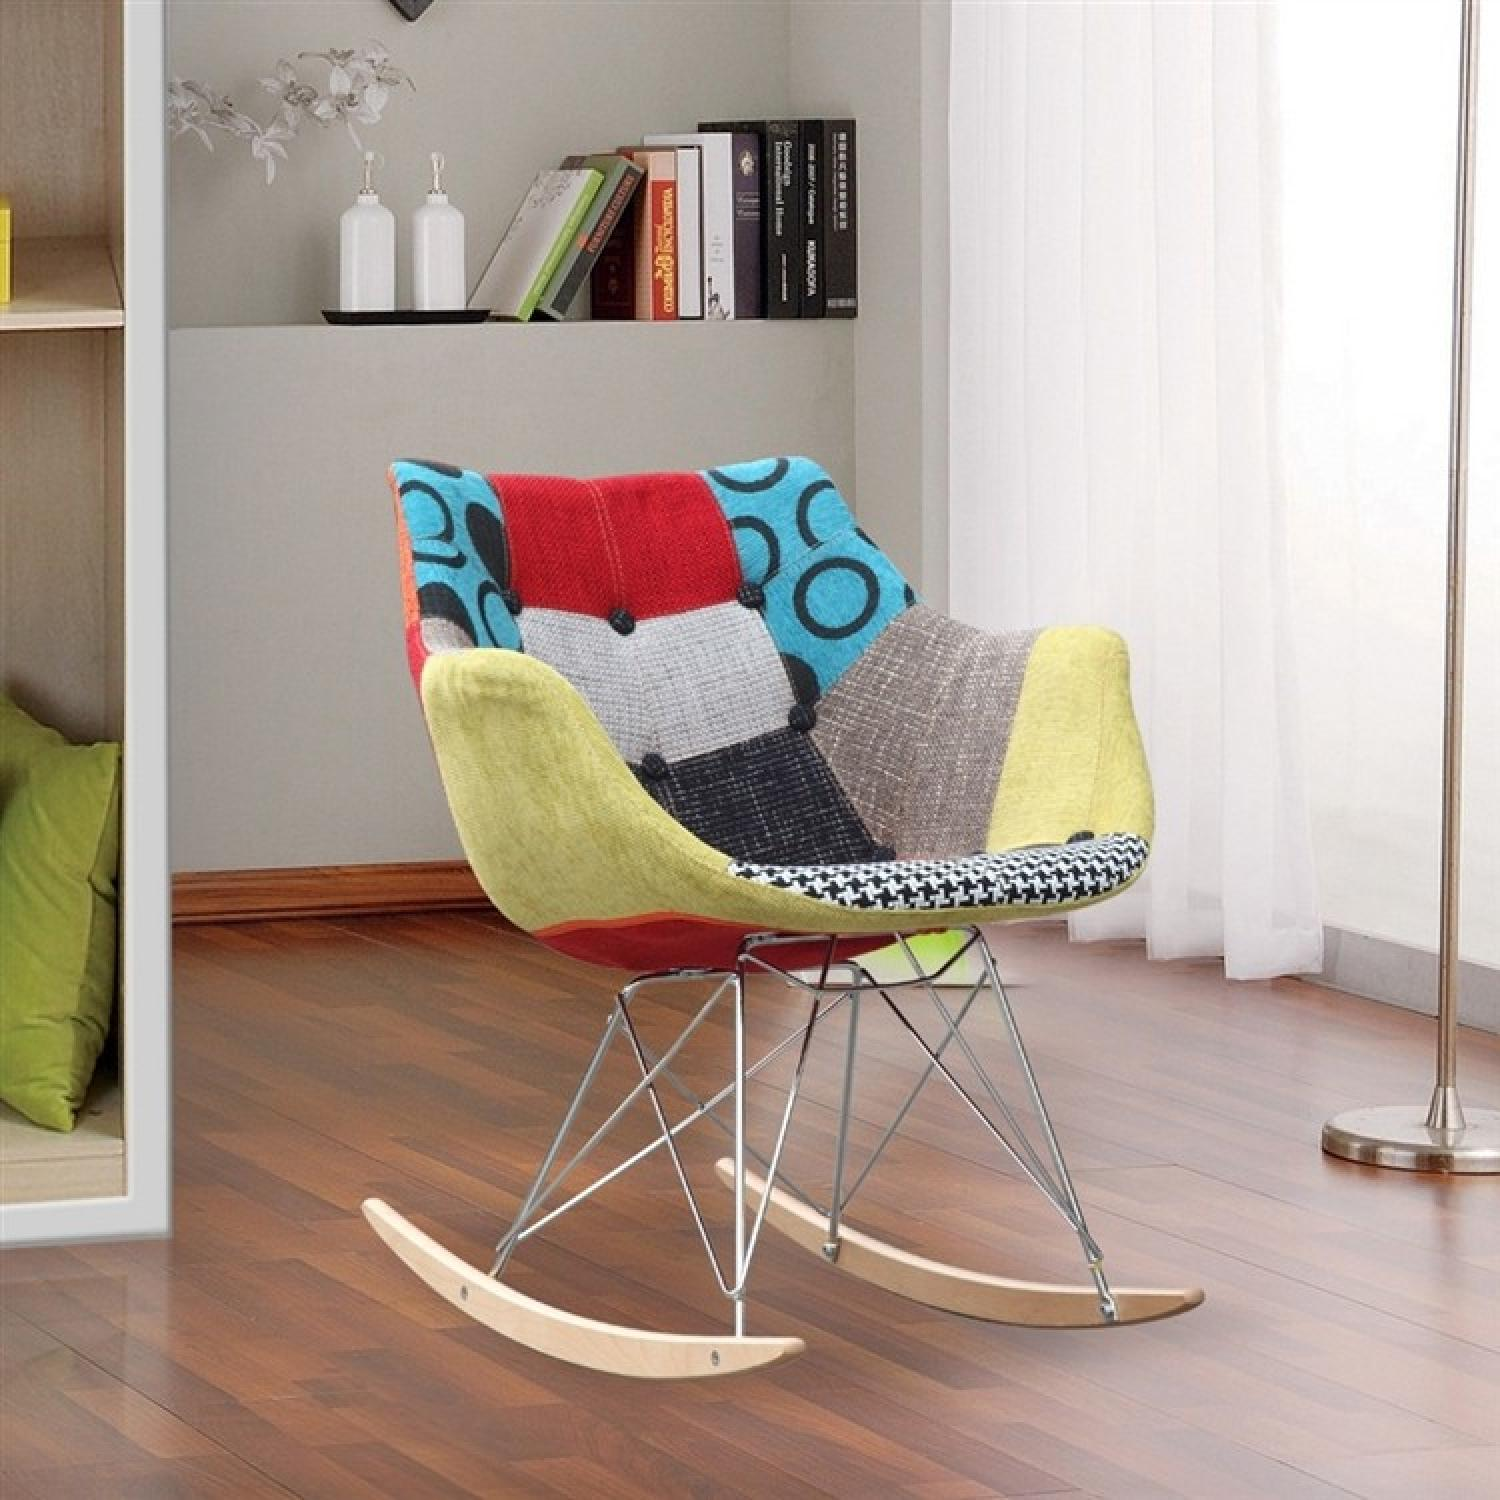 ab rocker chair all modern white dining chairs rocking w colorful fabric print in abs frame aptdeco